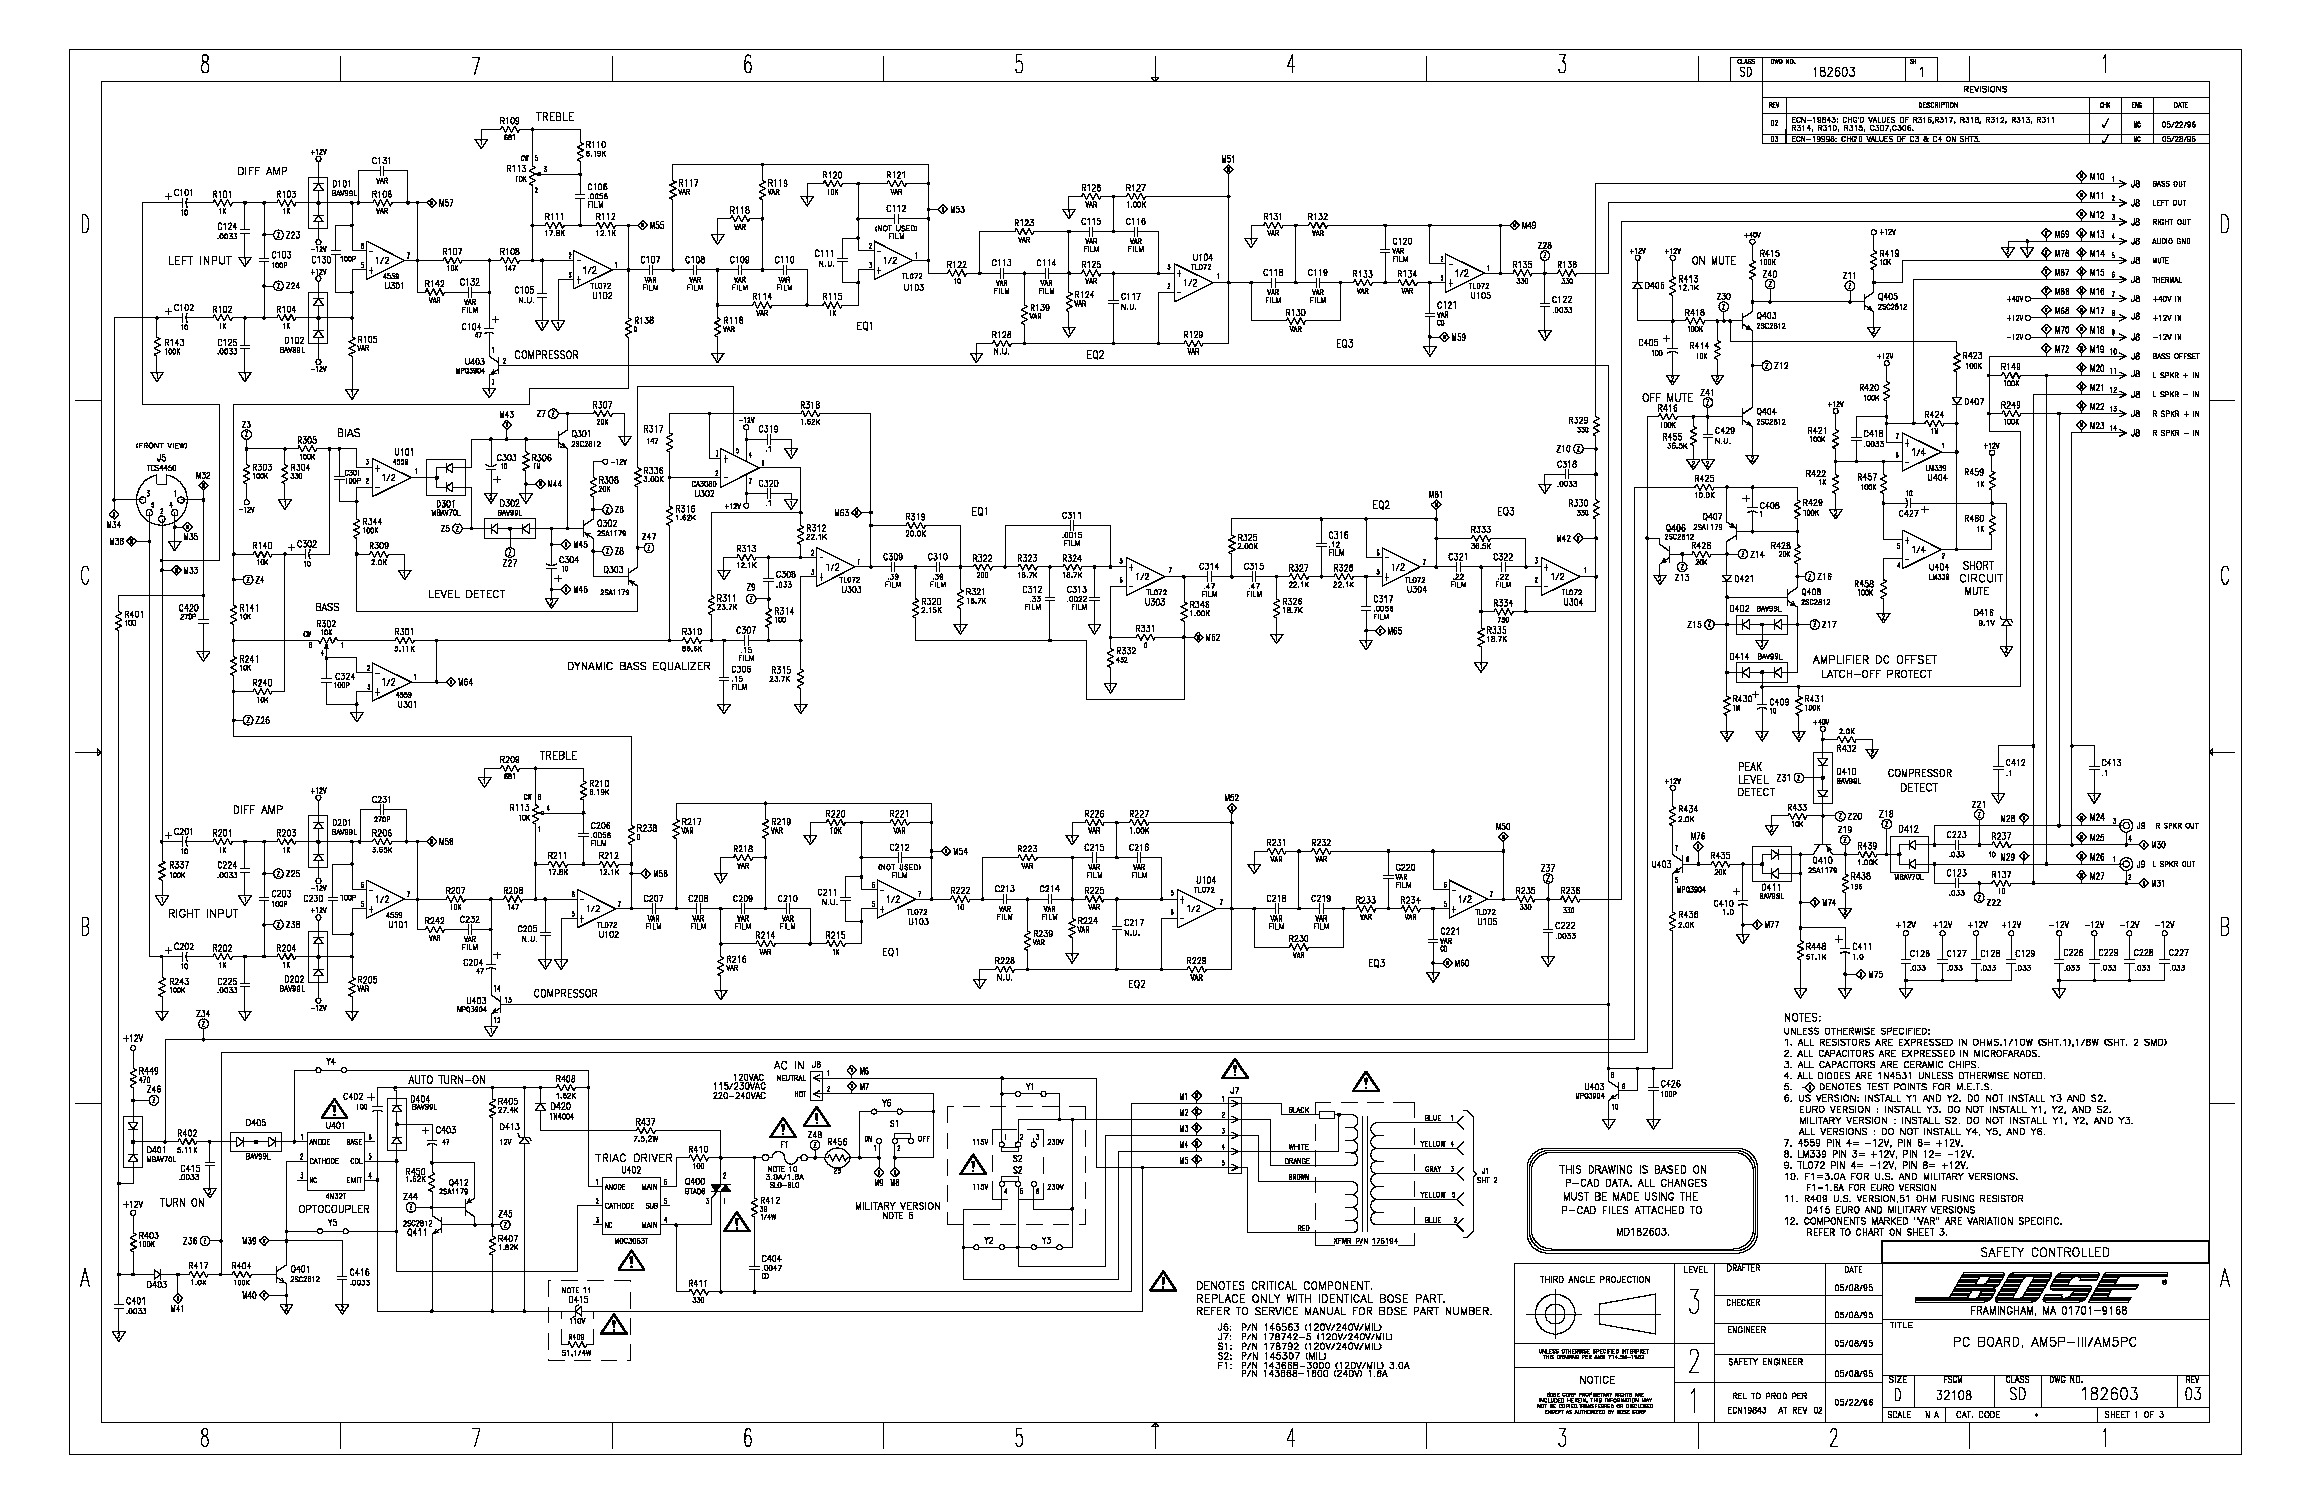 Bose AM 5P Schematic.pdf